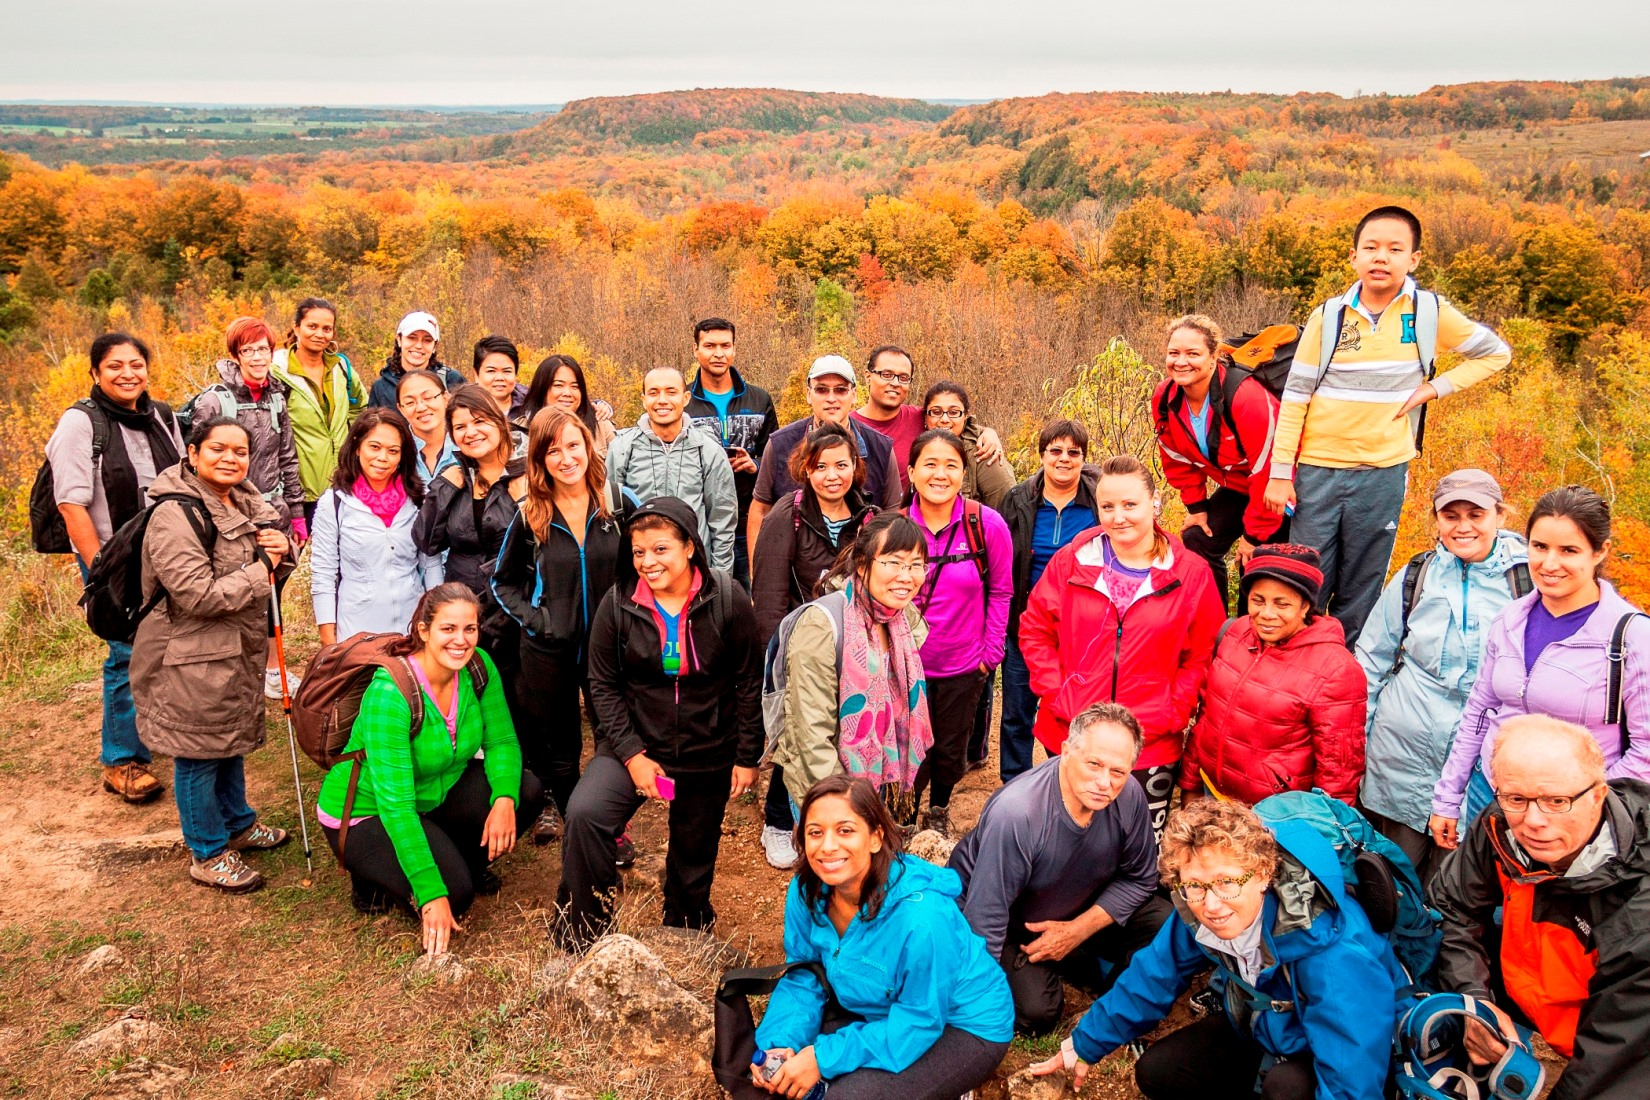 Book your hiking day TRIP to scenic Rattlesnake Point by Friday, Oct 20